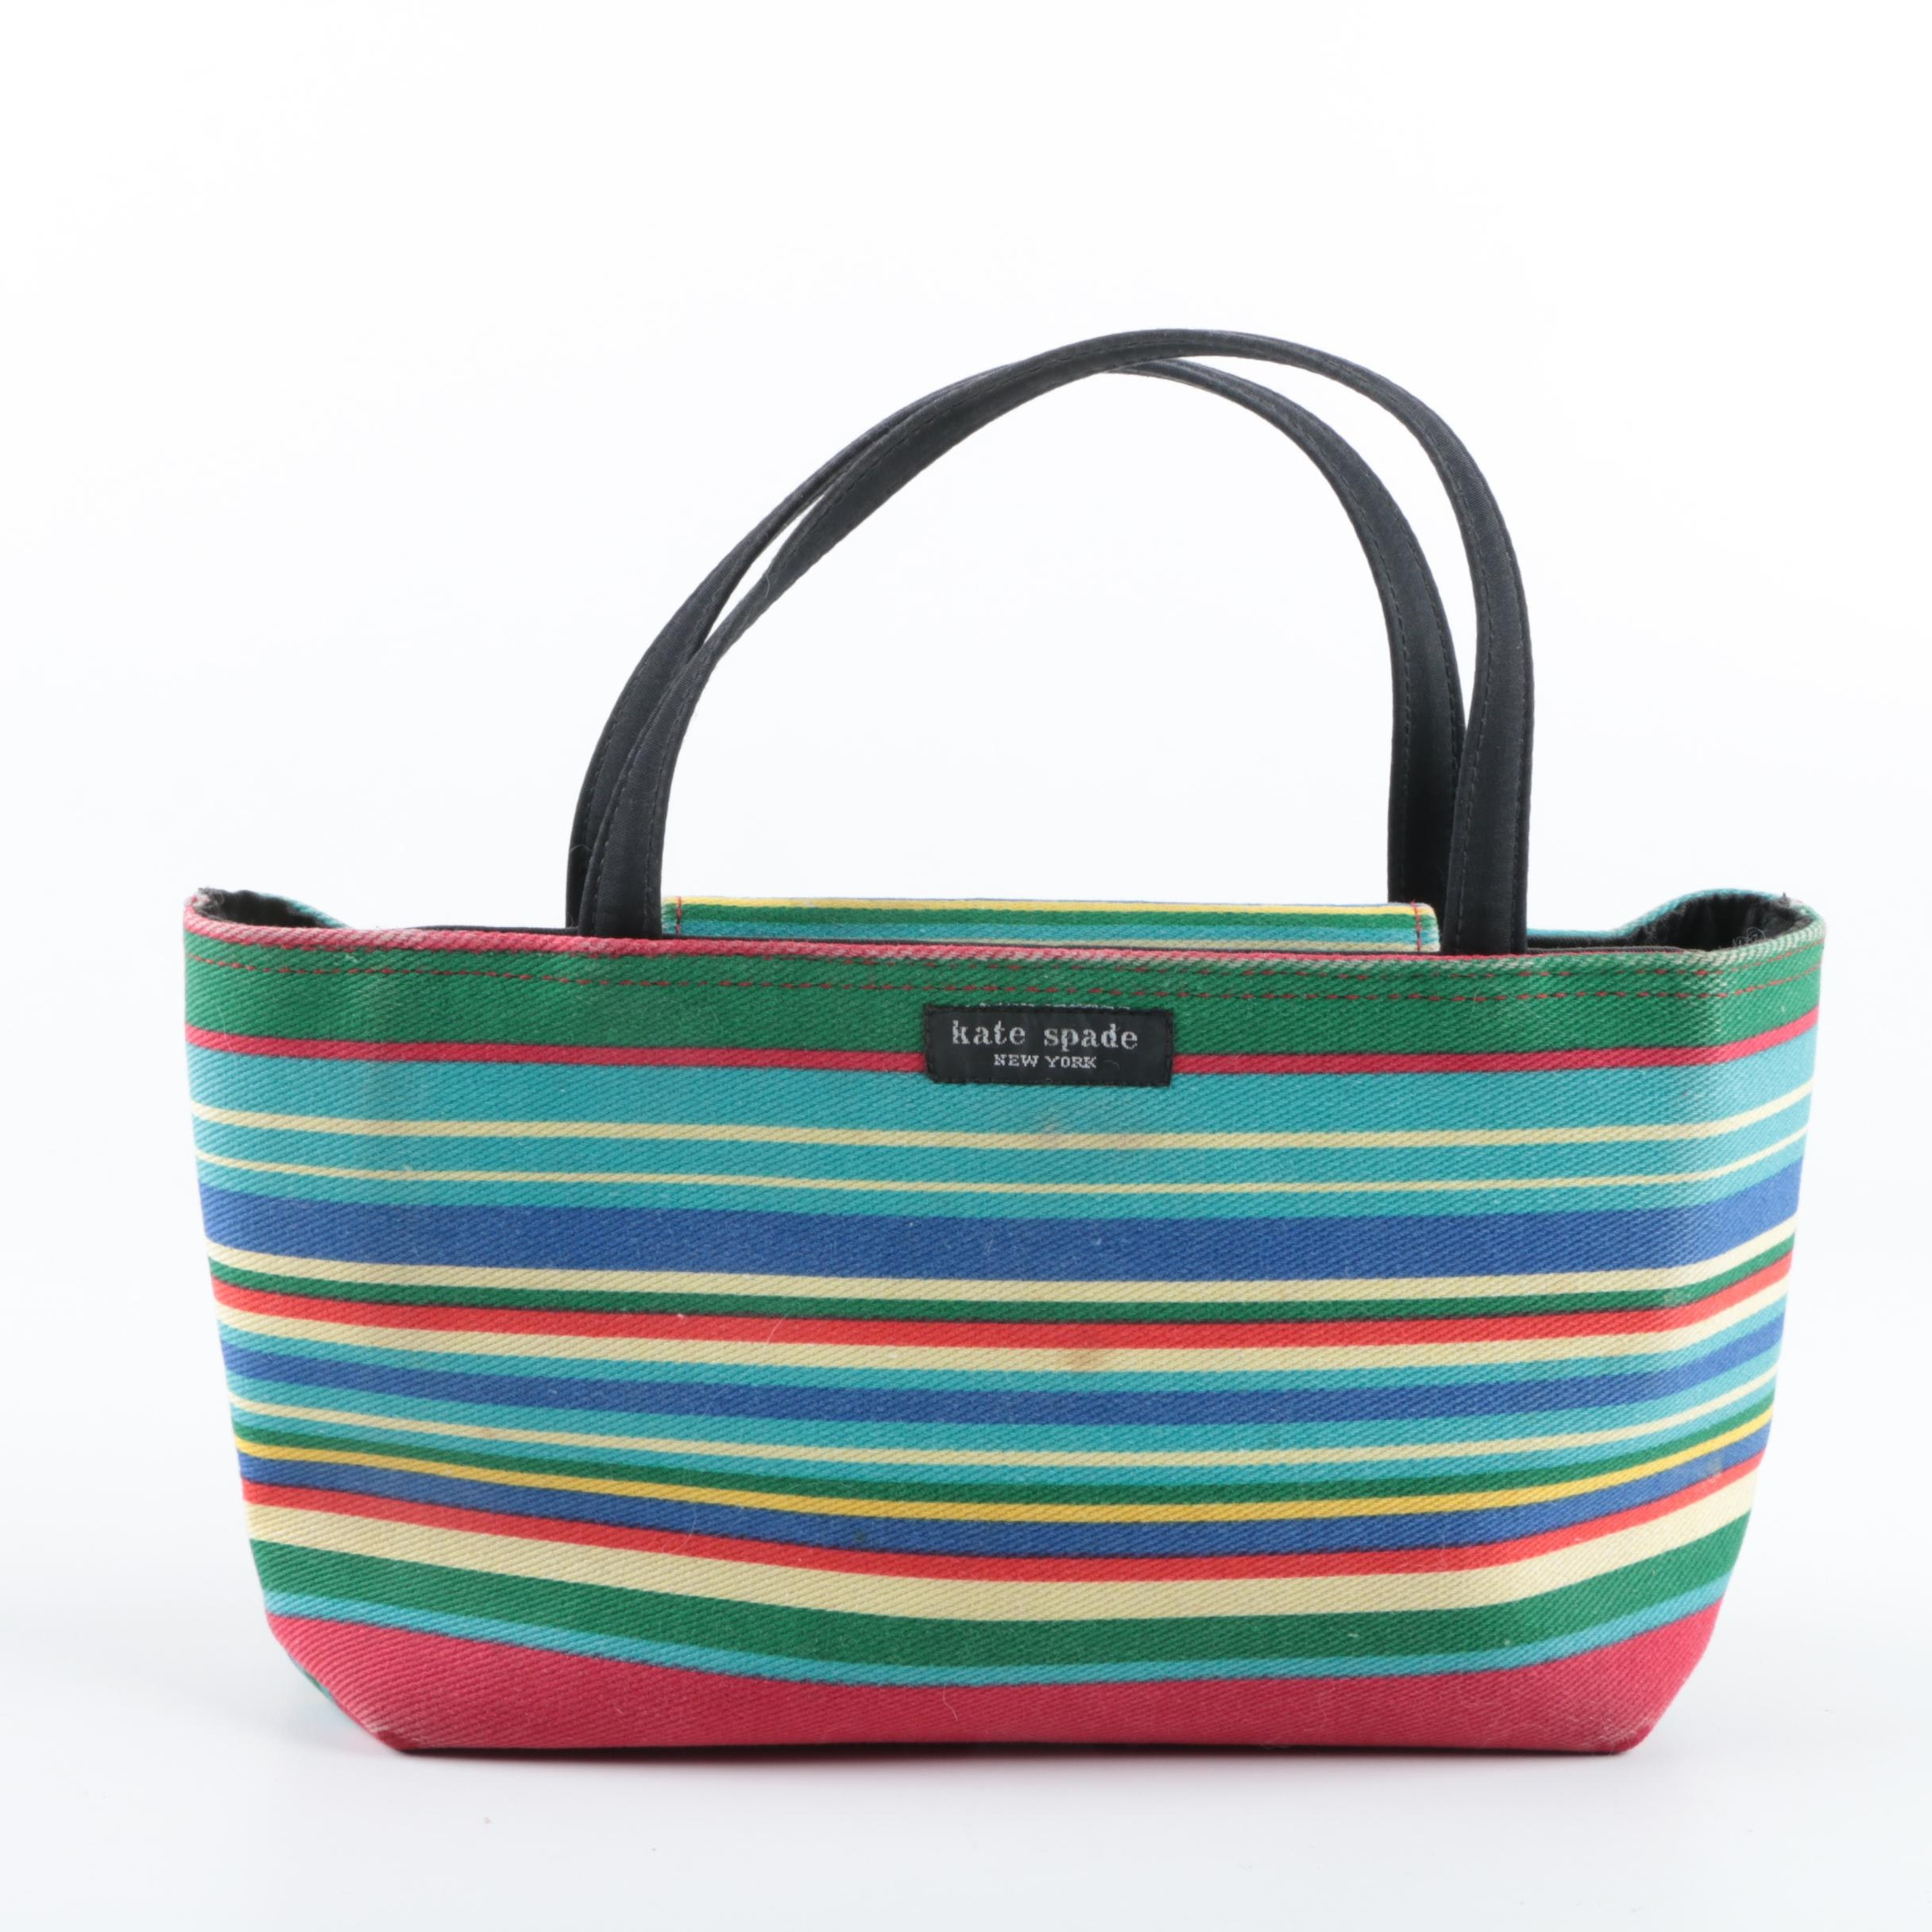 Kate Spade New York Multicolor Canvas Tote